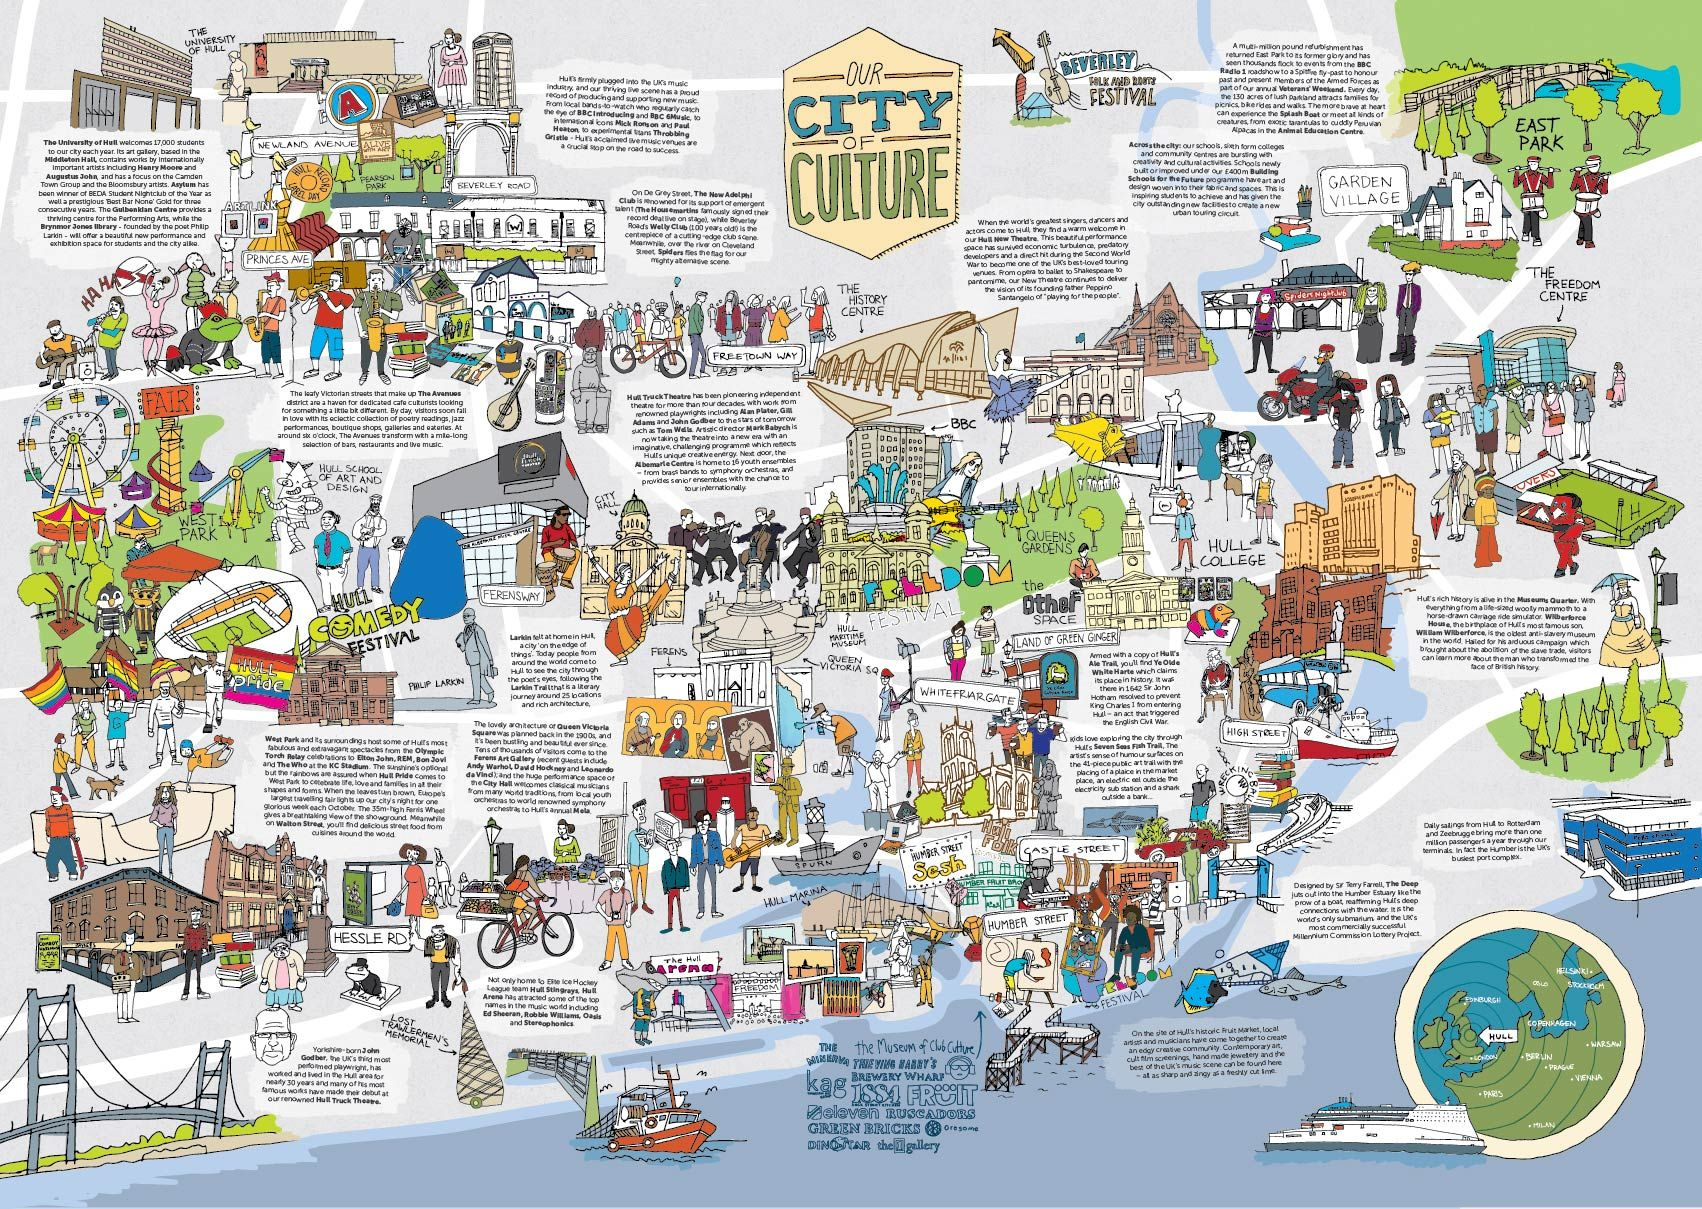 Hull city of culture map I could look at this for hours – Map of London City Centre